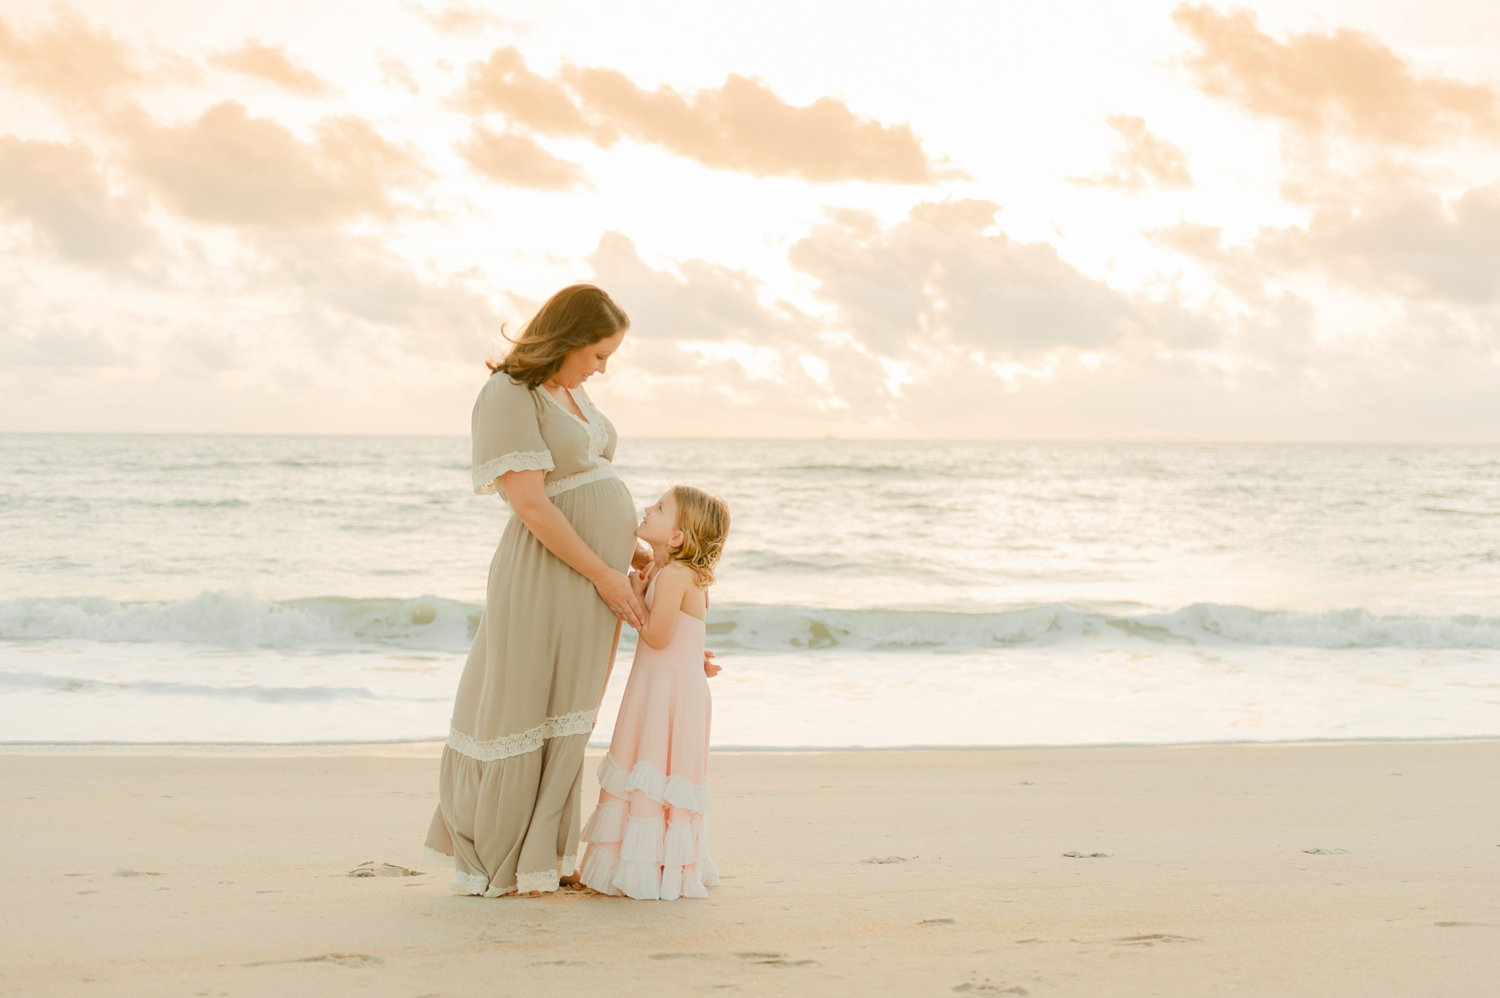 sunrise beach maternity portrait with daughter, Ryaphotos, Saint Augustine